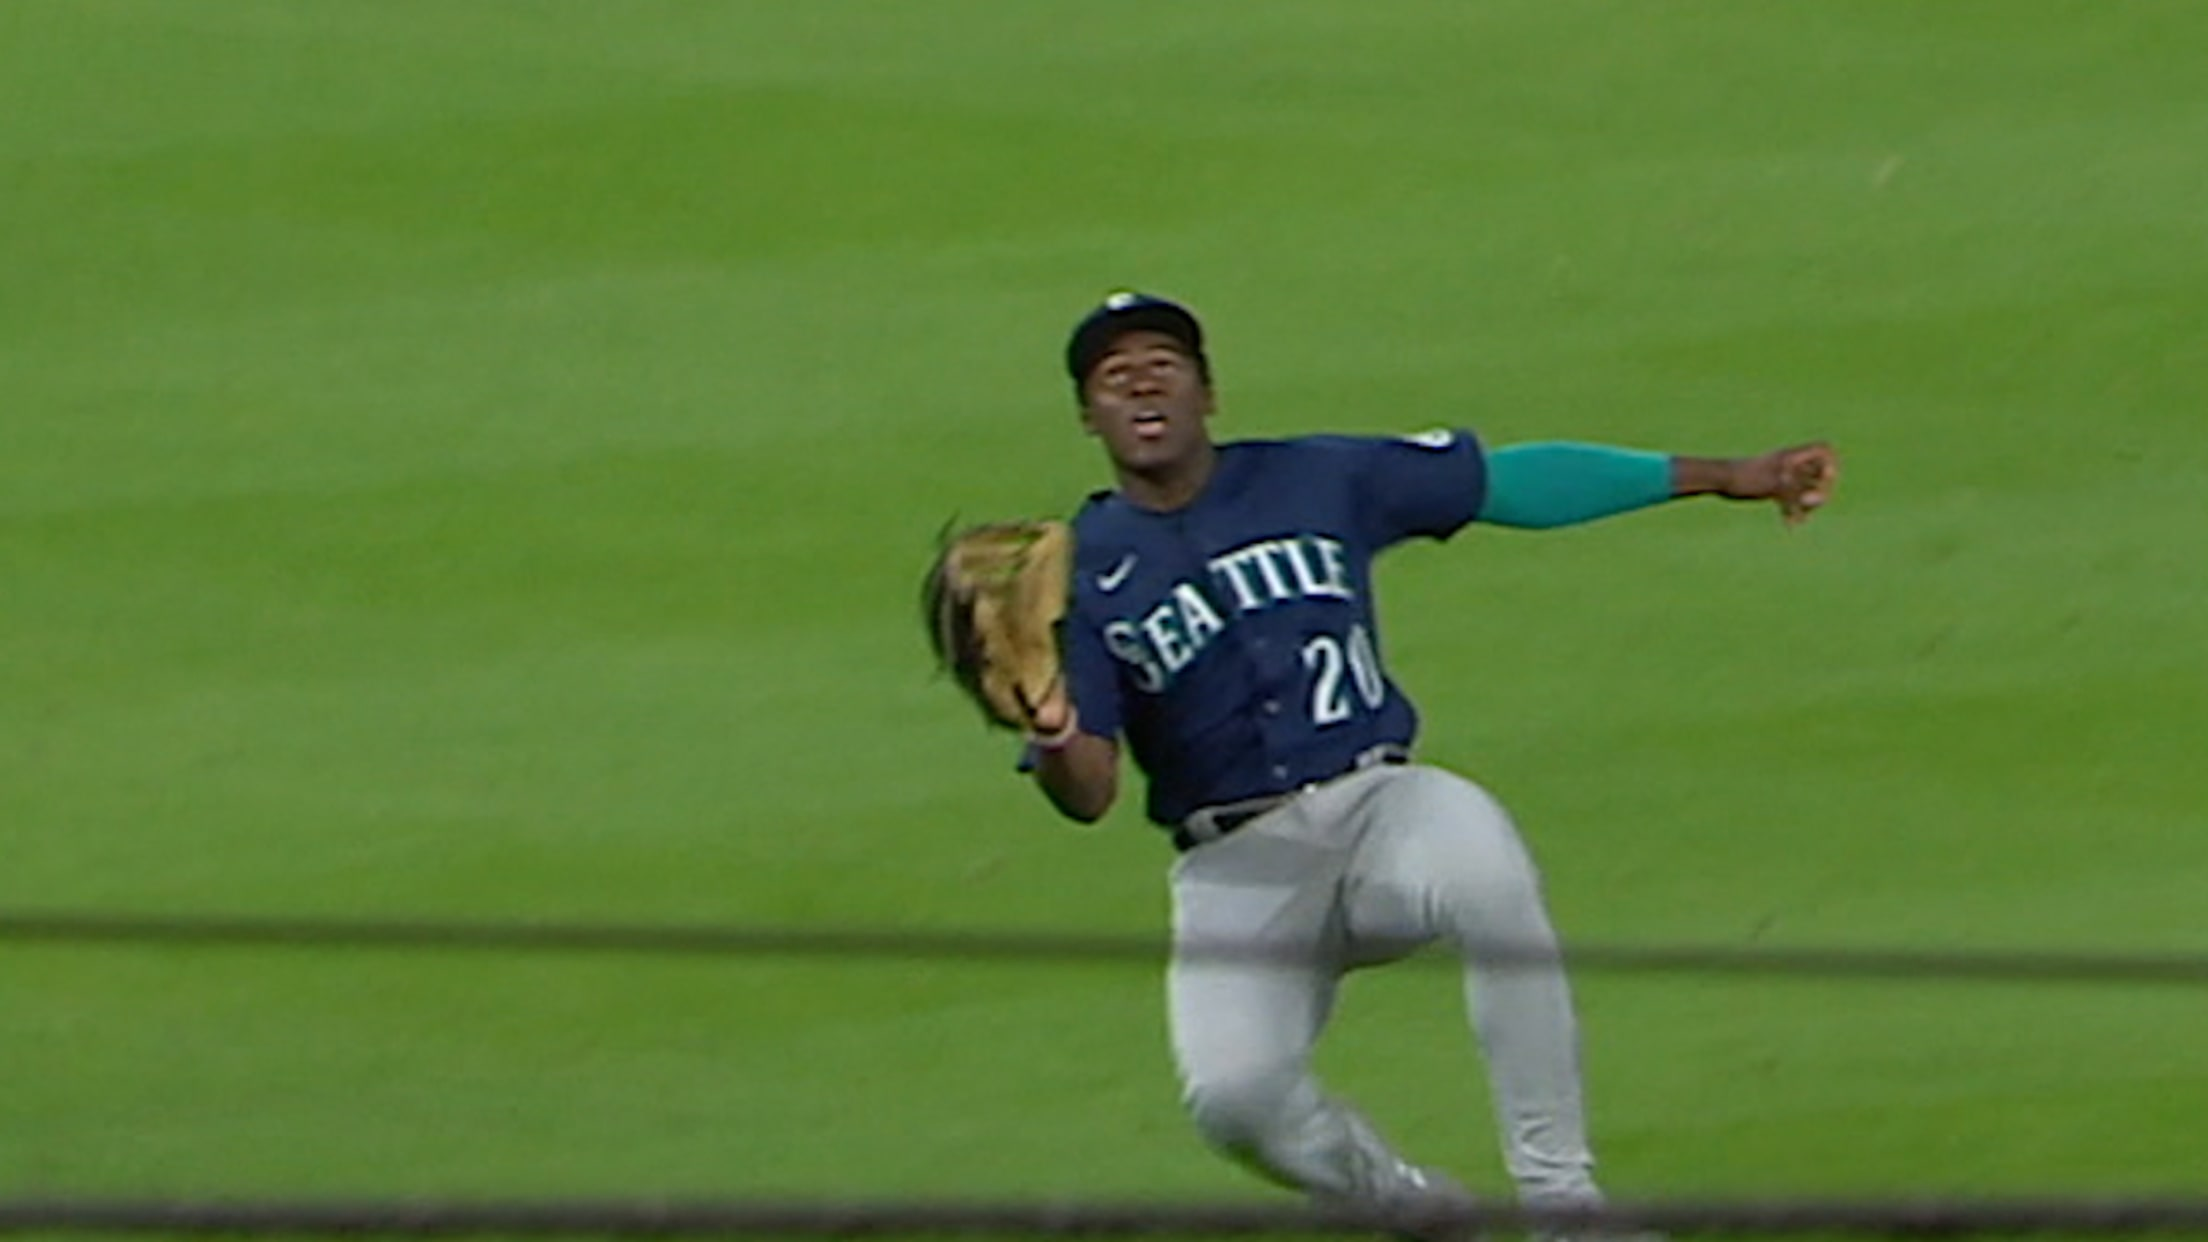 Taylor Trammell's catch ends game